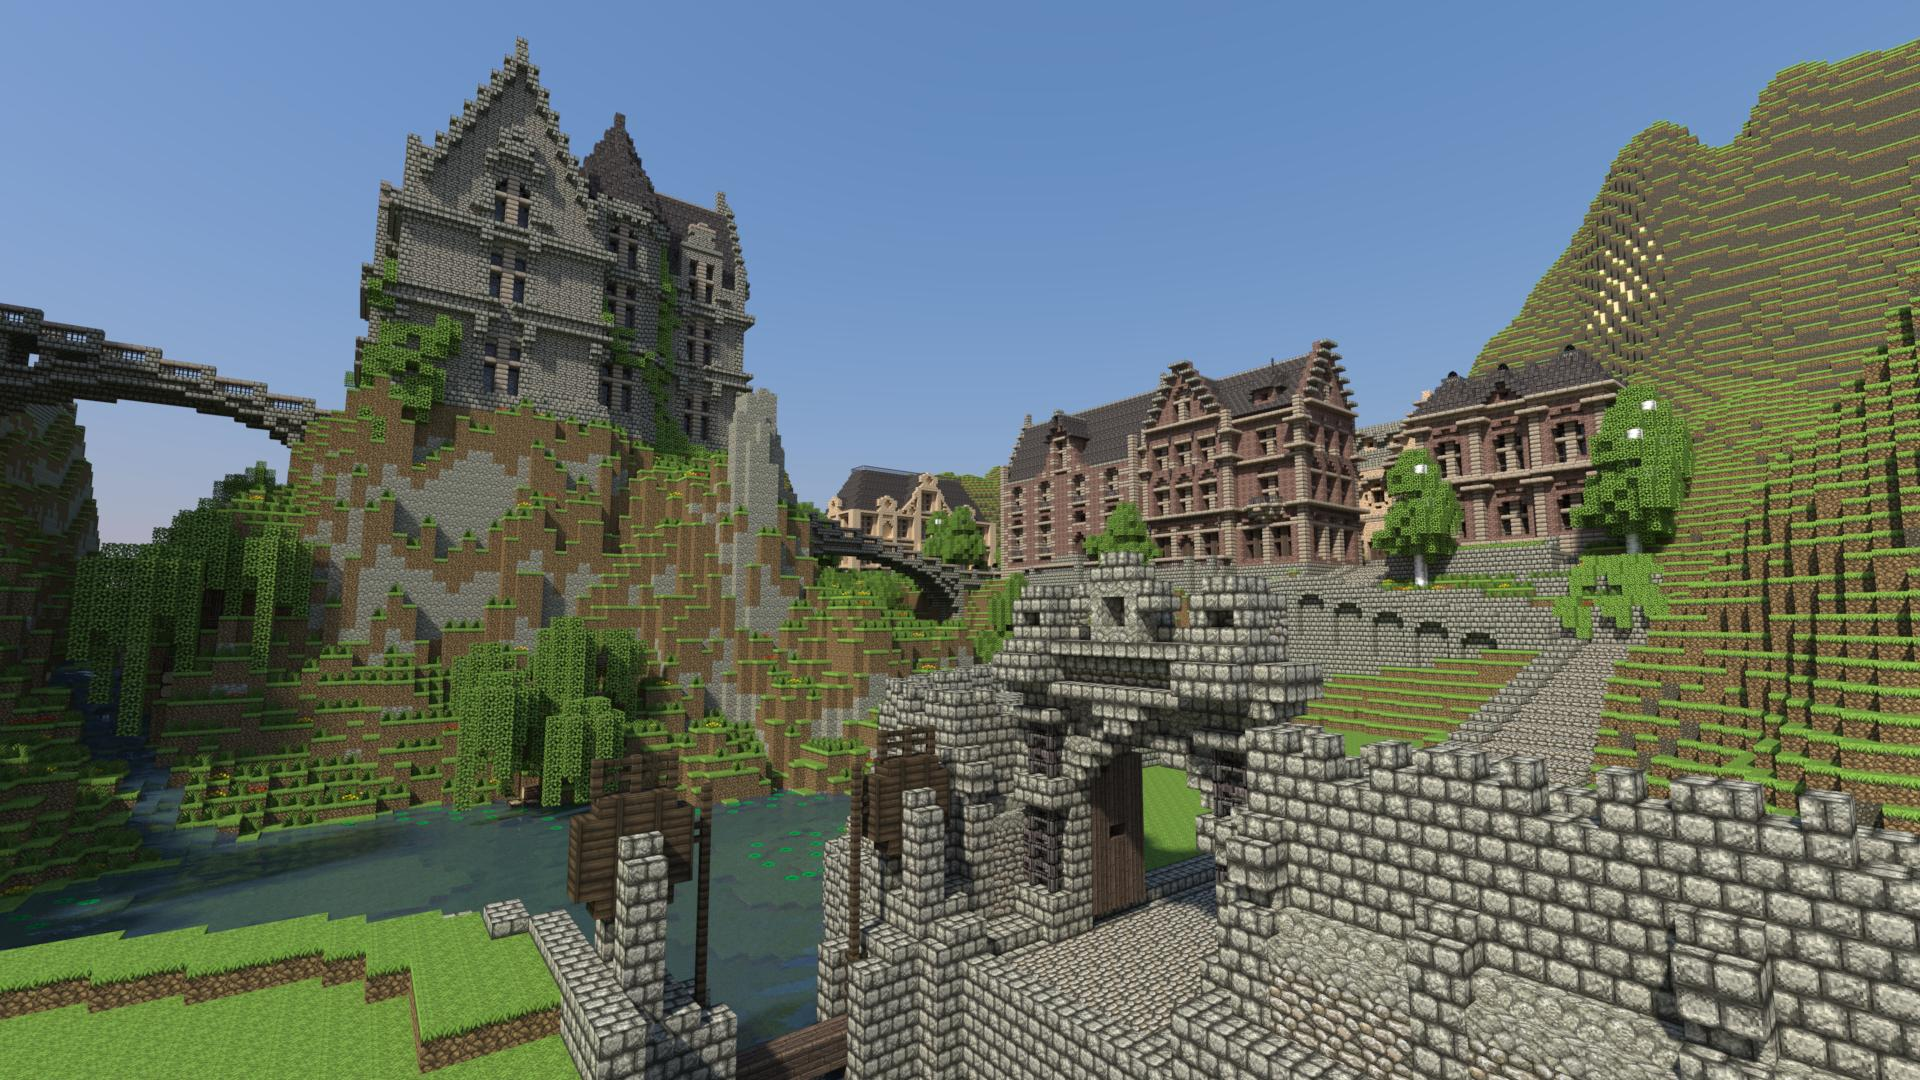 Minecraft Adds New Feature: